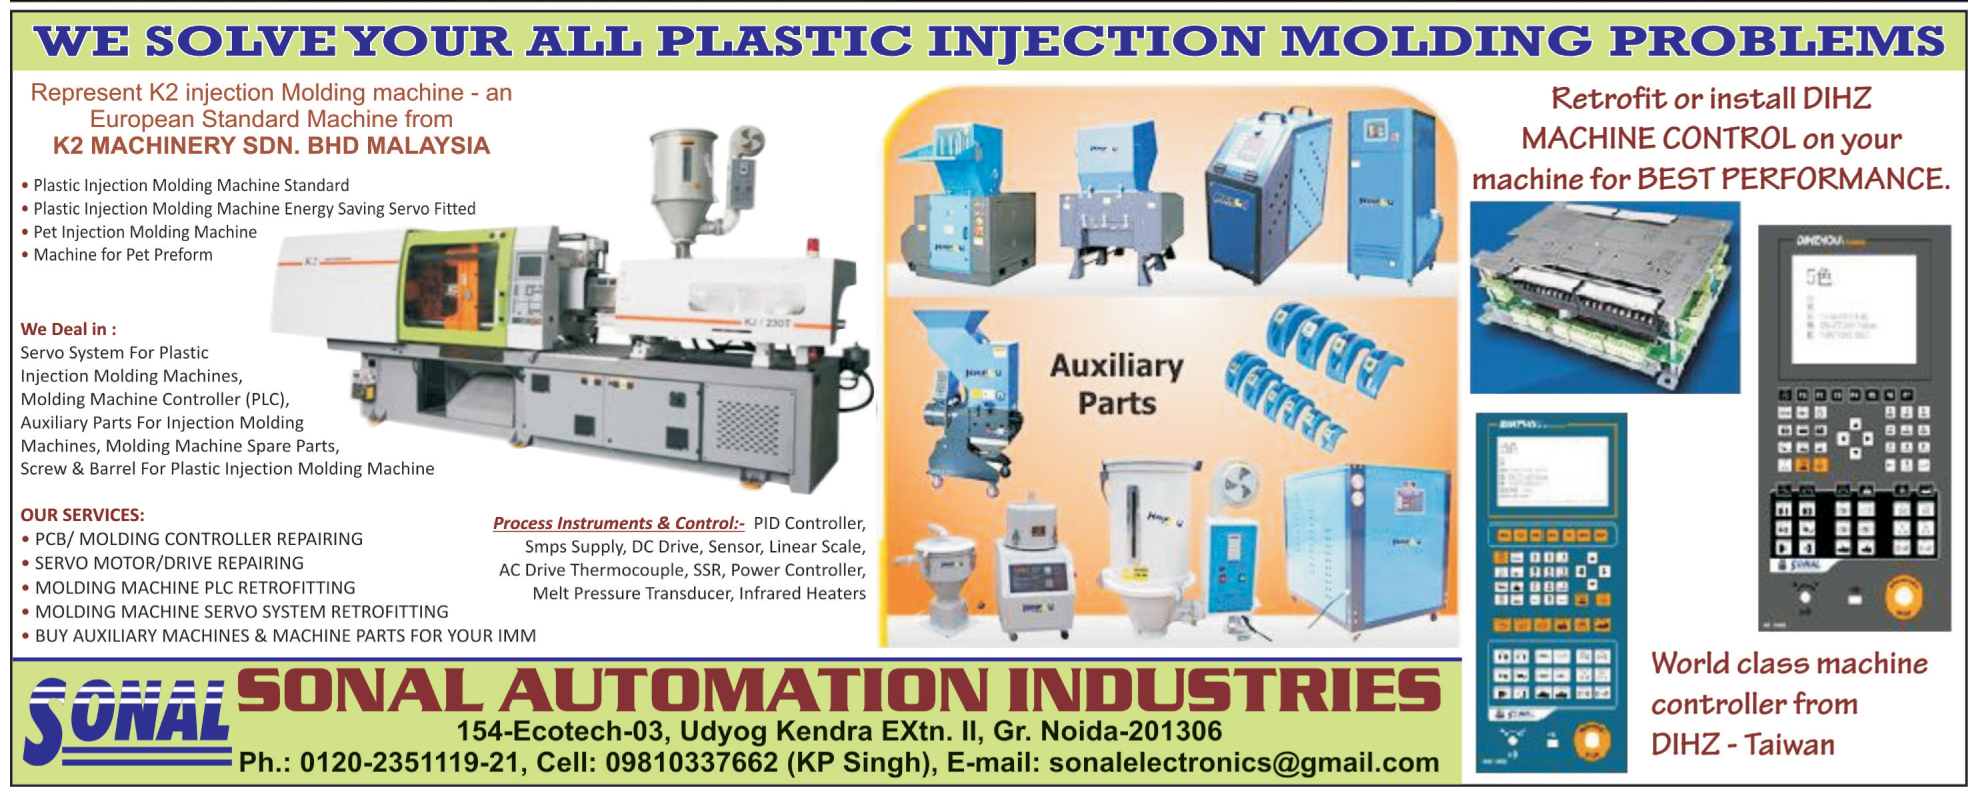 Plastic Injection Moulding Machines, Plastic Injection Moulding Machines Stable Servo Motor, Plastic Injection Moulding Machine Energy Saving Servo System, Injection Moulding Machines, Servo System, PLC Retrofitting, HRTC, Plastic Crusher, Plastic Injection Moulding Machine Sensor, Plastic Injection Moulding Machine Transmitters, Renovated Machines, Magnetic Mold Clamp, Automatic Mold Temperature Controller, Plastic Injection Moulding Machine Auxiliary Equipments, Plastic Injection Moulding Machine AC Drive Thermocouples, Plastic Injection Moulding Machine SSR, Plastic Injection Moulding Machine Linear Scale, Plastic Injection Moulding Machine Power Controllers, Plastic Injection Moulding Machine Melt Pressure Transducers, Plastic Injection Moulding Machine Infrared Heaters, Machine Controller for Moulding Machine, Plastic Injection Moulding Machine Barrel, Printed Circuit Board Controller Repairing, Moulding Controller Repairing, PCB Controller Repairing, Plastic Injection Moulding Machine Linear, Plastic Injection Moulding Machine DC Drive,  Plastic Injection Moulding Machine SMPS Supply, Plastic Injection Moulding Machine PID Controller